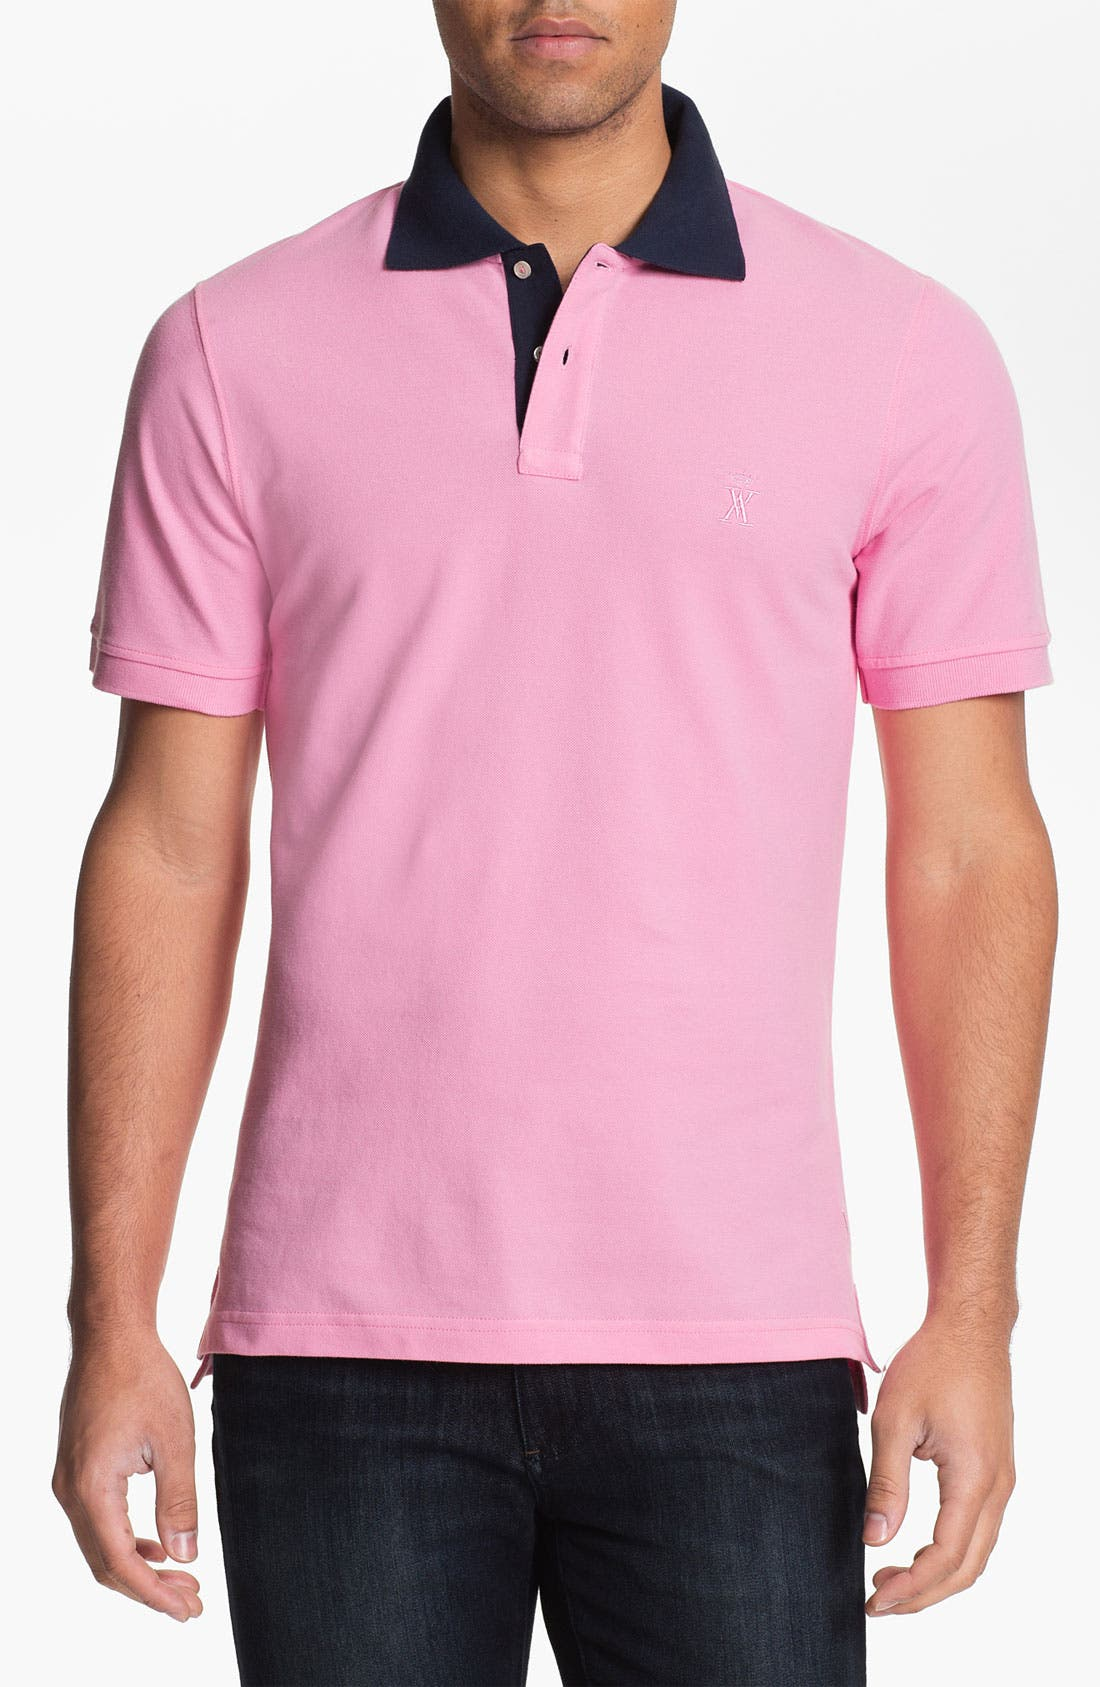 Alternate Image 1 Selected - Vicomte A. Trim Fit Polo